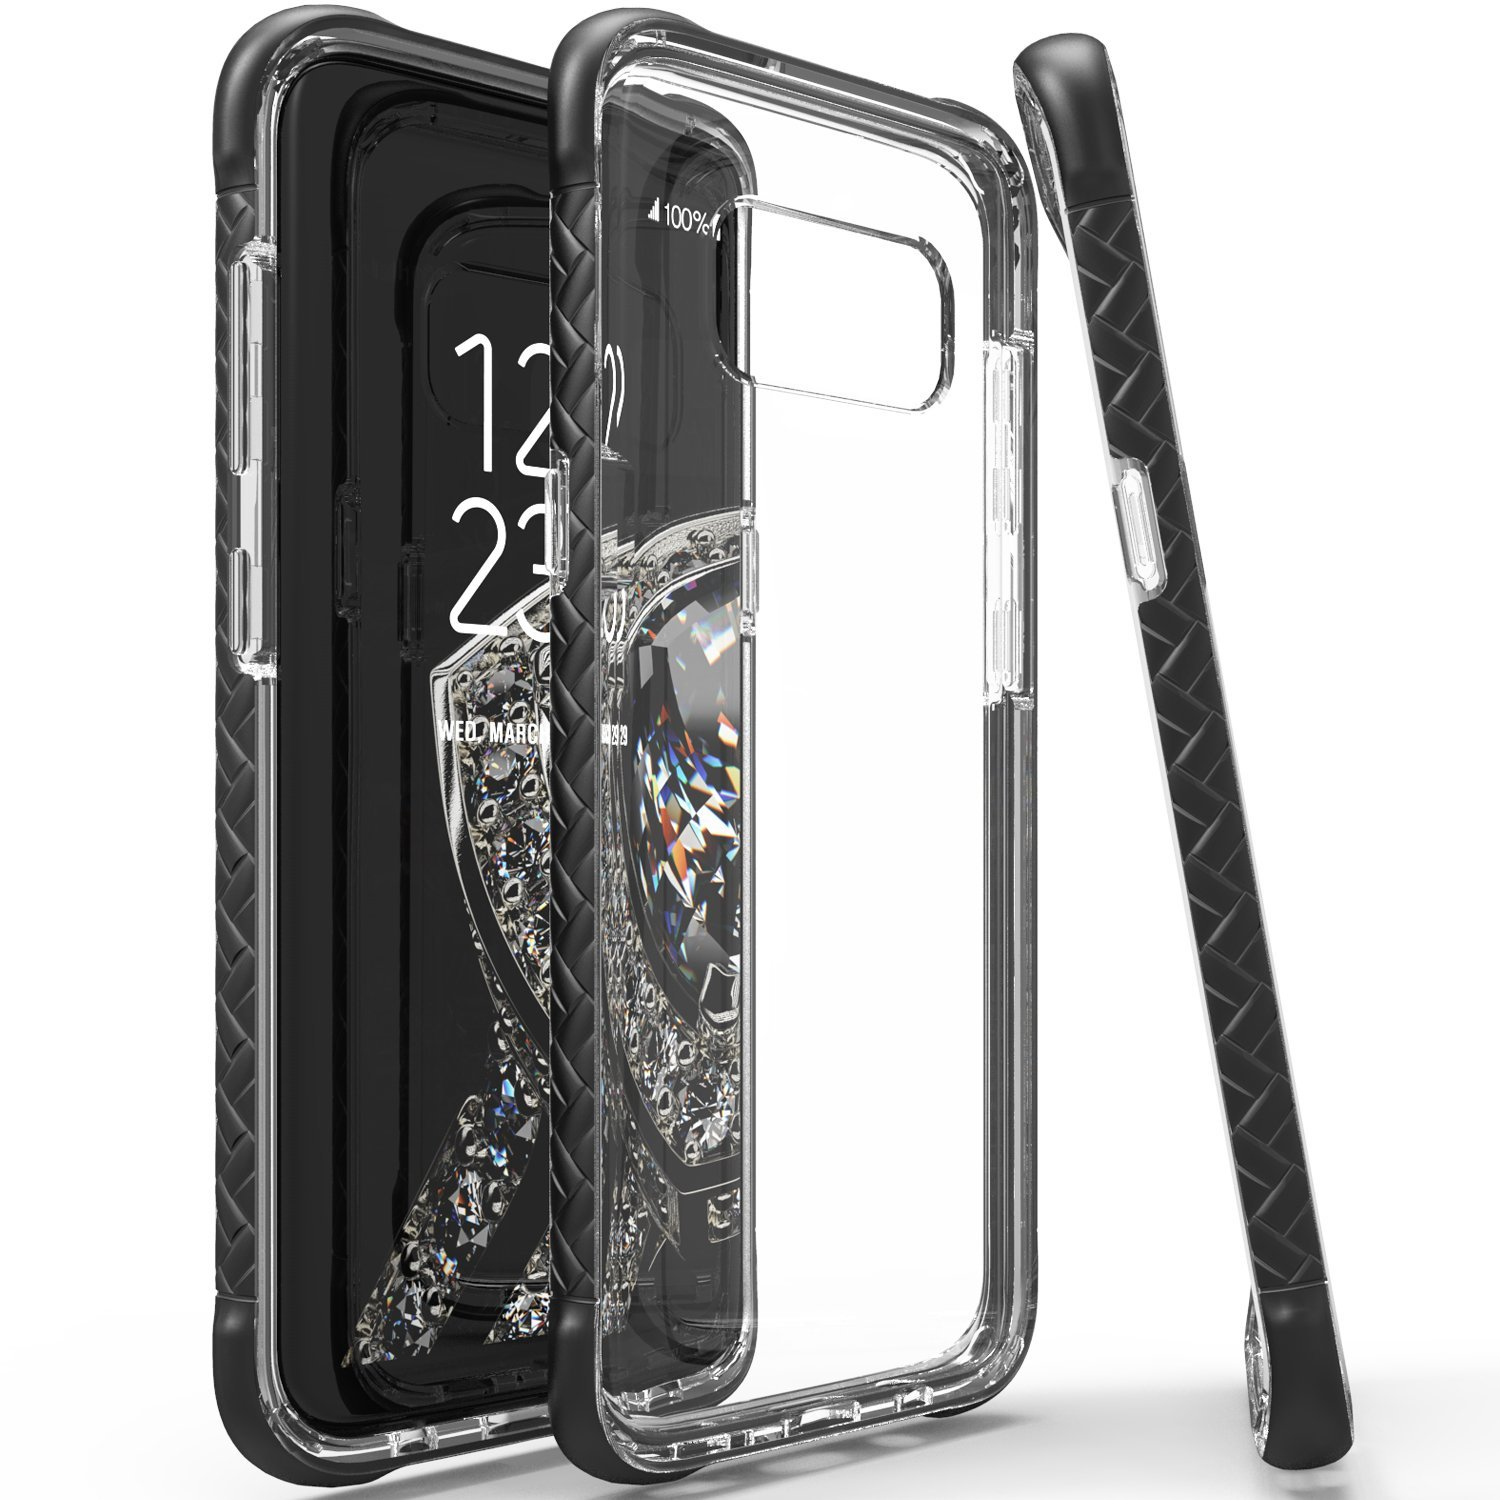 Scottii [Samsung Galaxy Galaxy S8 Plus Case] TPU Case with Removable BLACK Borders and CLEAR Back, Slim & Flexible Anti-shock Crystal Silicone Protective TPU Gel Skin Case Cover